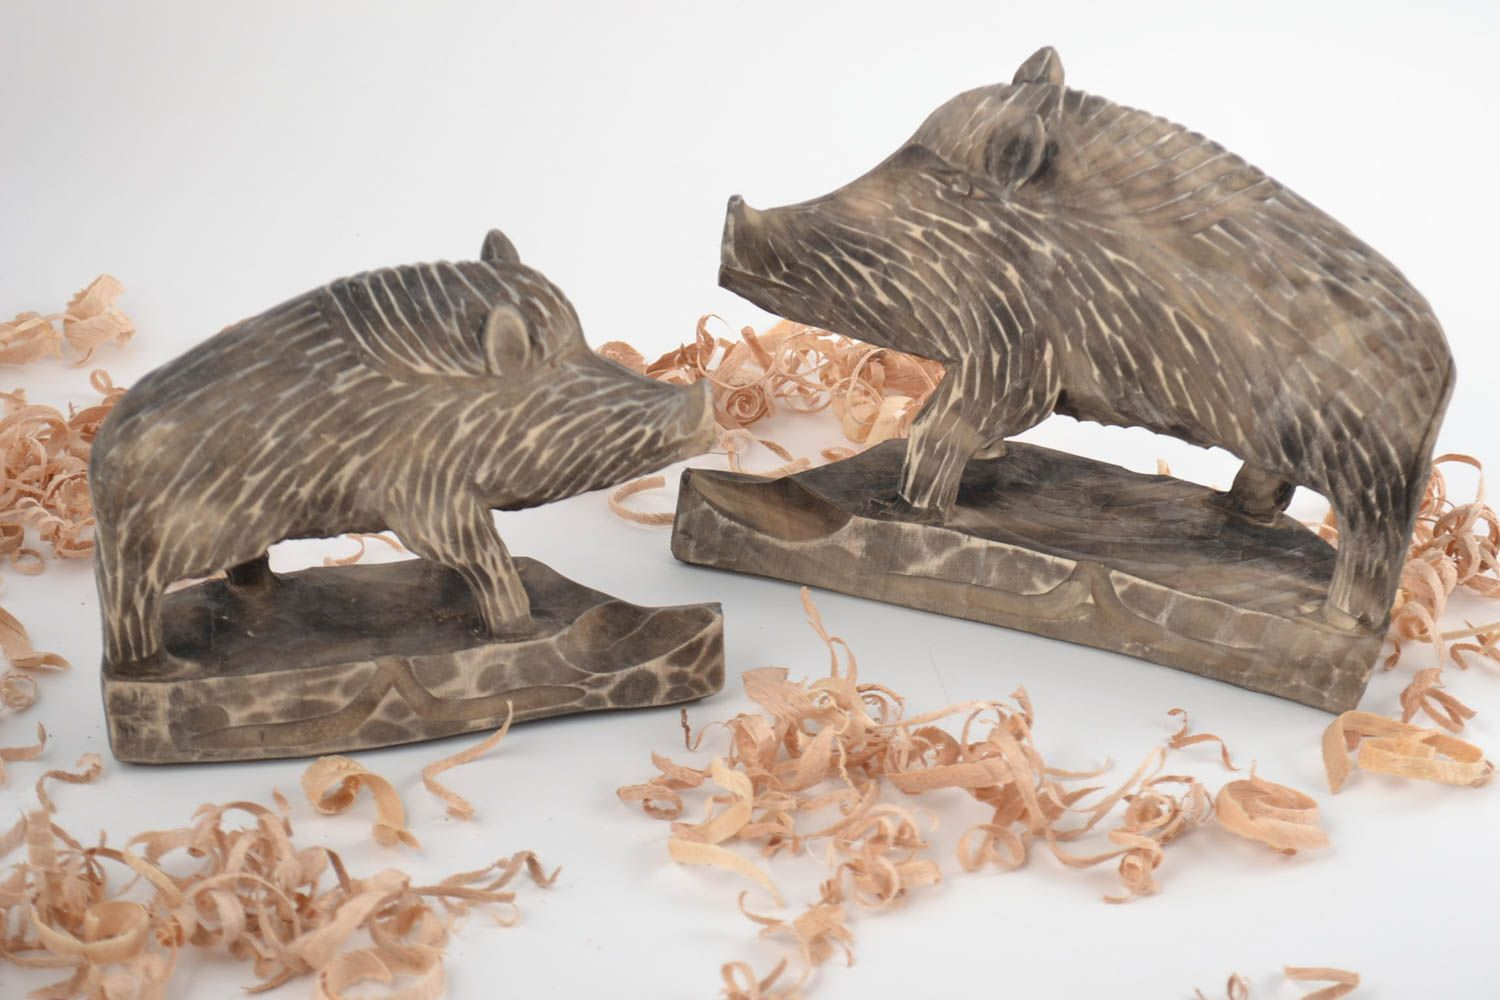 Set Of 2 Handmade Collectible Wooden Animal Figurines Small And Big Boars